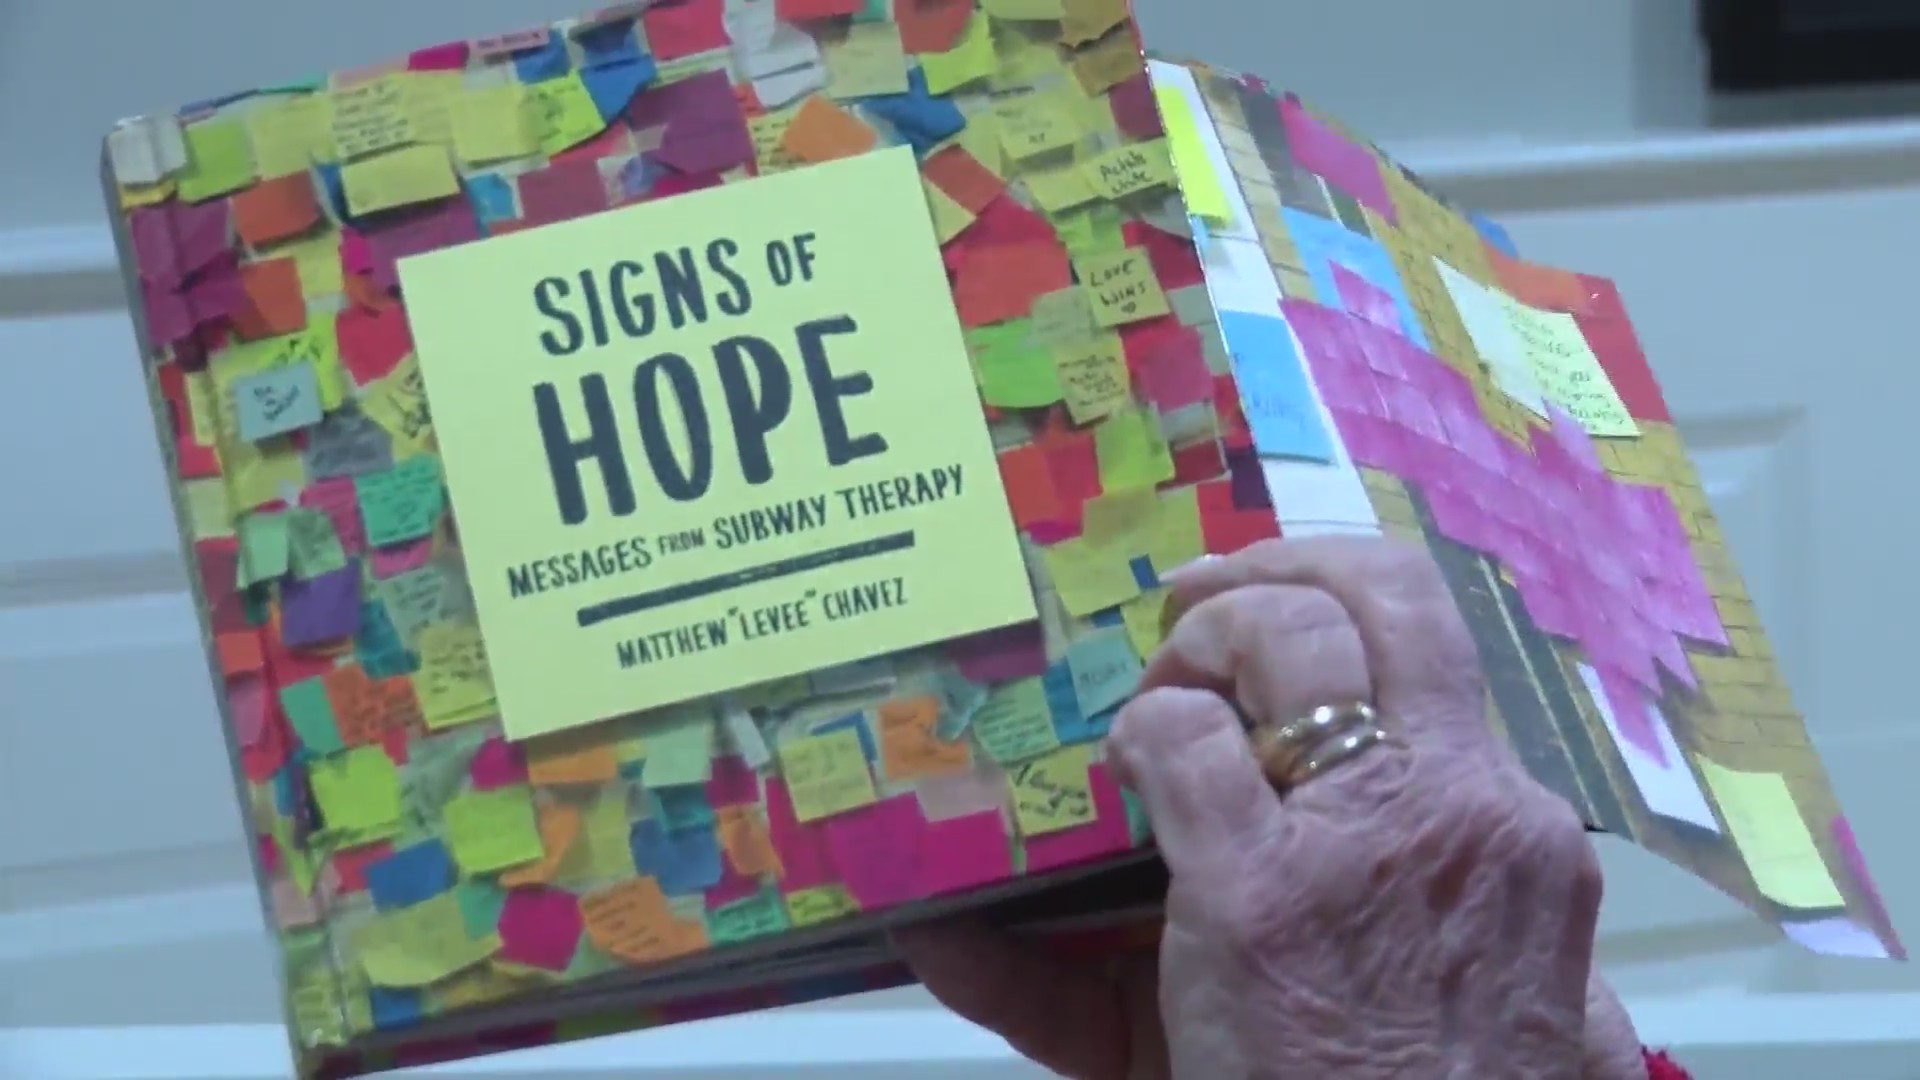 Book_of_hope_pkg_0_20181205231352